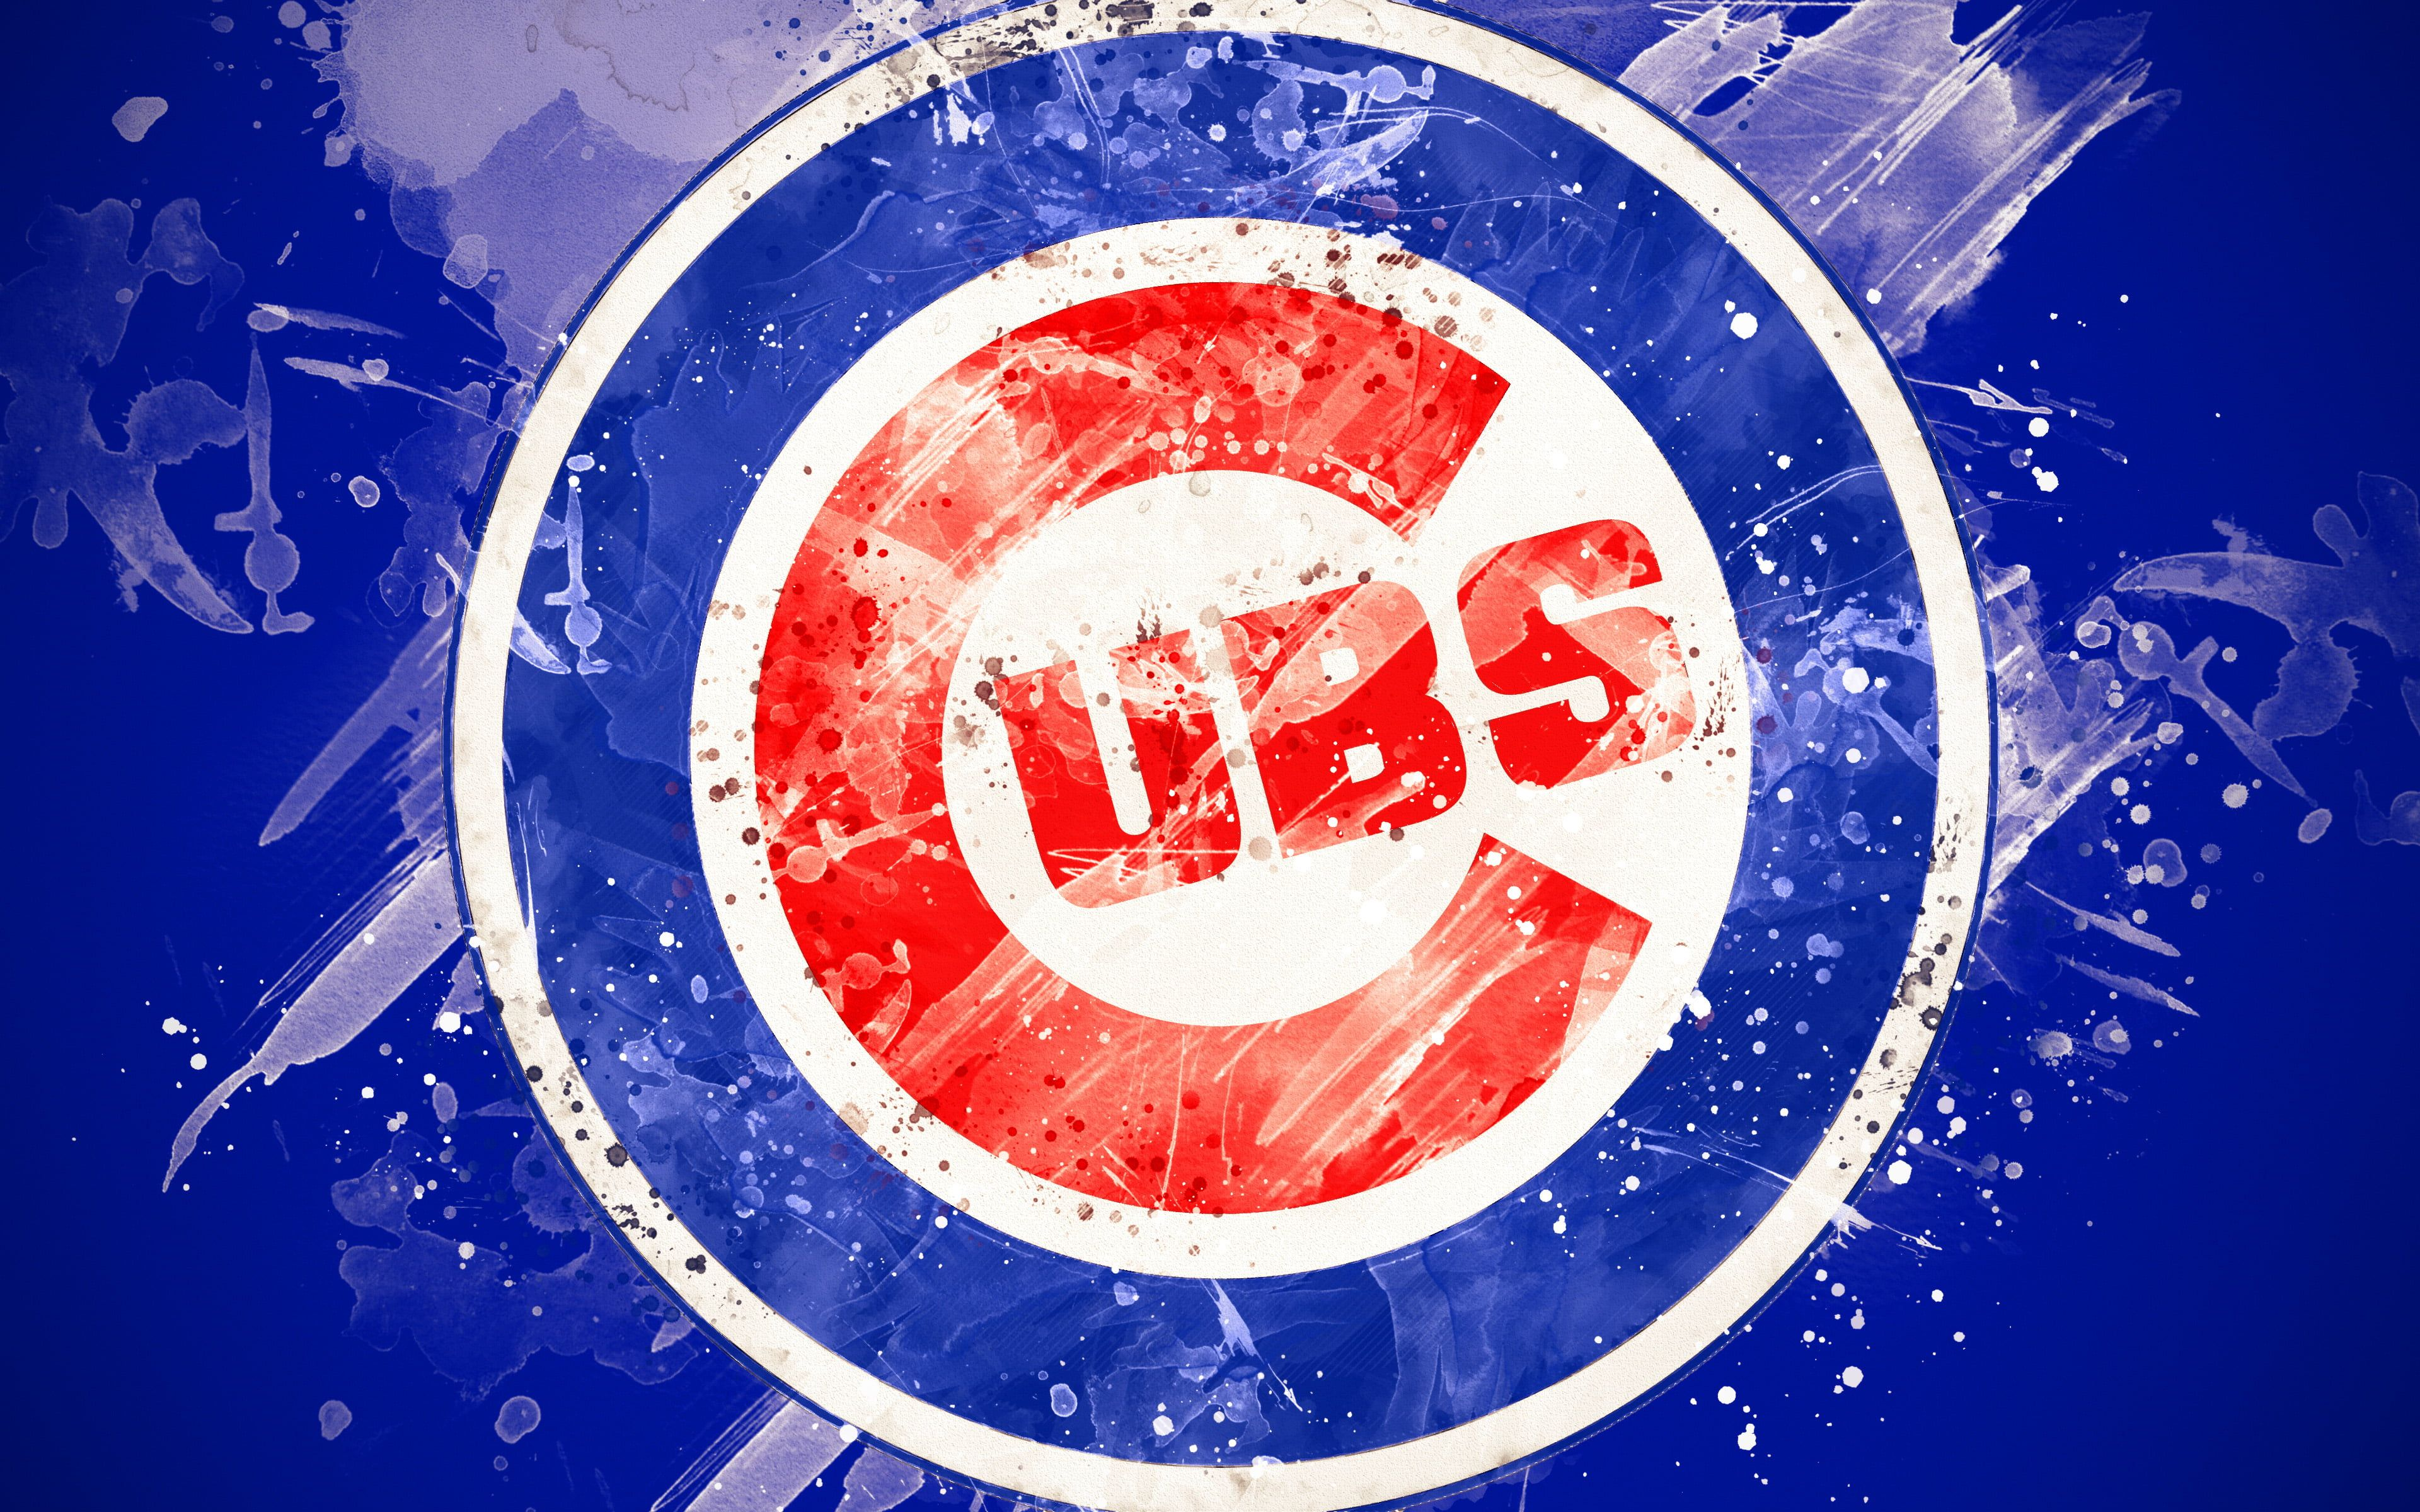 Pin By Tom Seiner On Baseball In 2021 Chicago Cubs Wallpaper Cubs Wallpaper Mlb Wallpaper